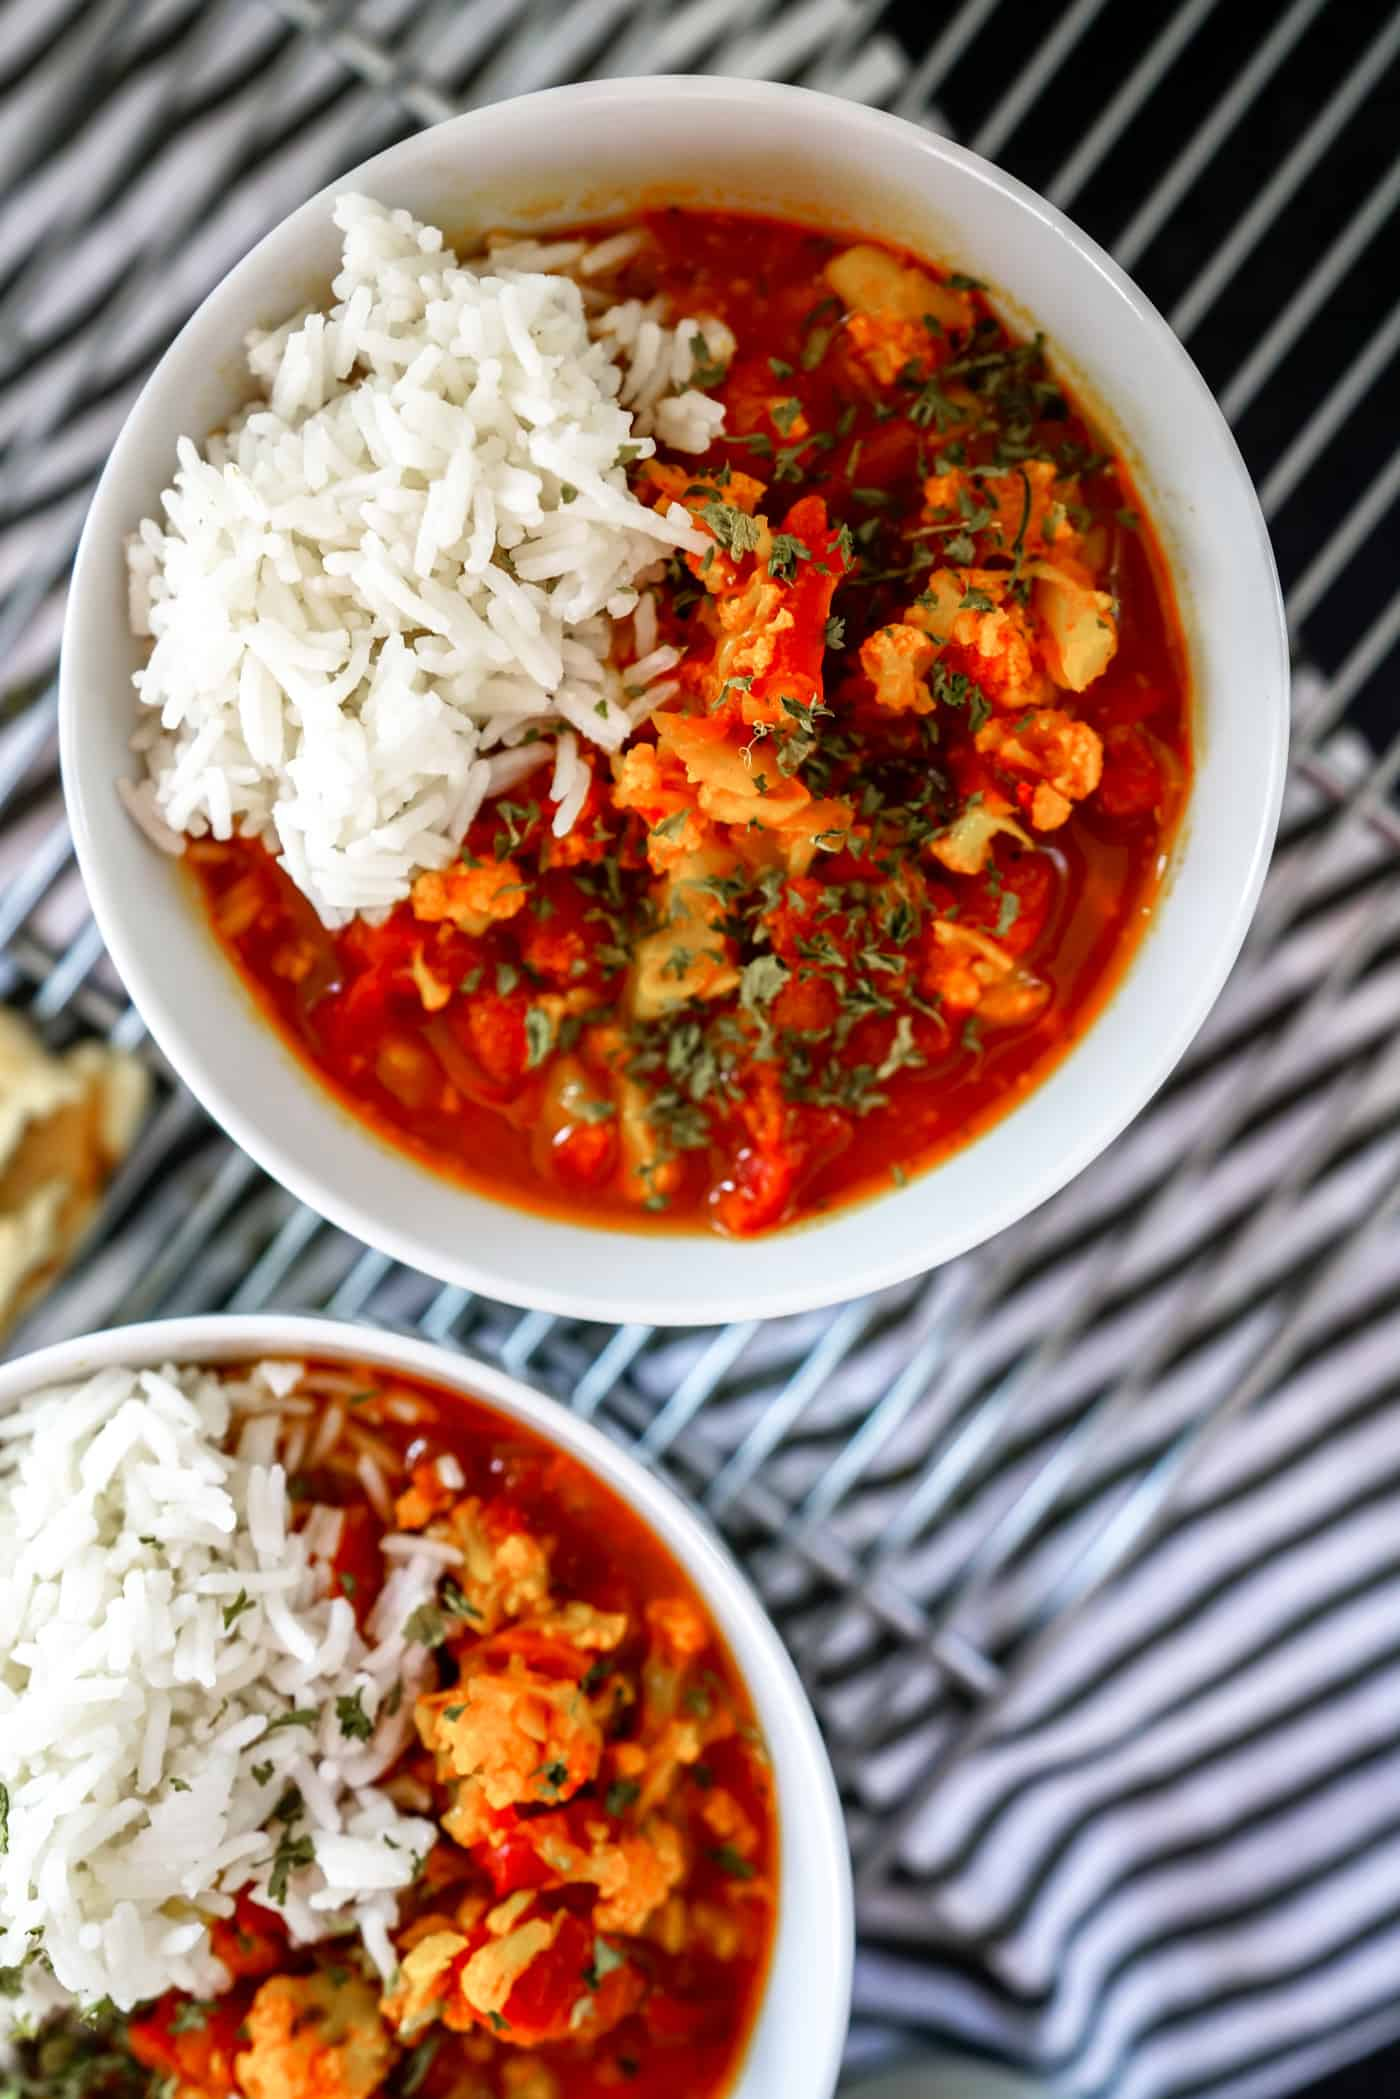 WOW! This Instant Pot Cauliflower Tikka Masala recipe is packed full of so much flavor! It's a must try! This recipe is so quick, easy, vegan friendly and will have your family running to the table! It's the best cauliflower tikka masala we have ever had!